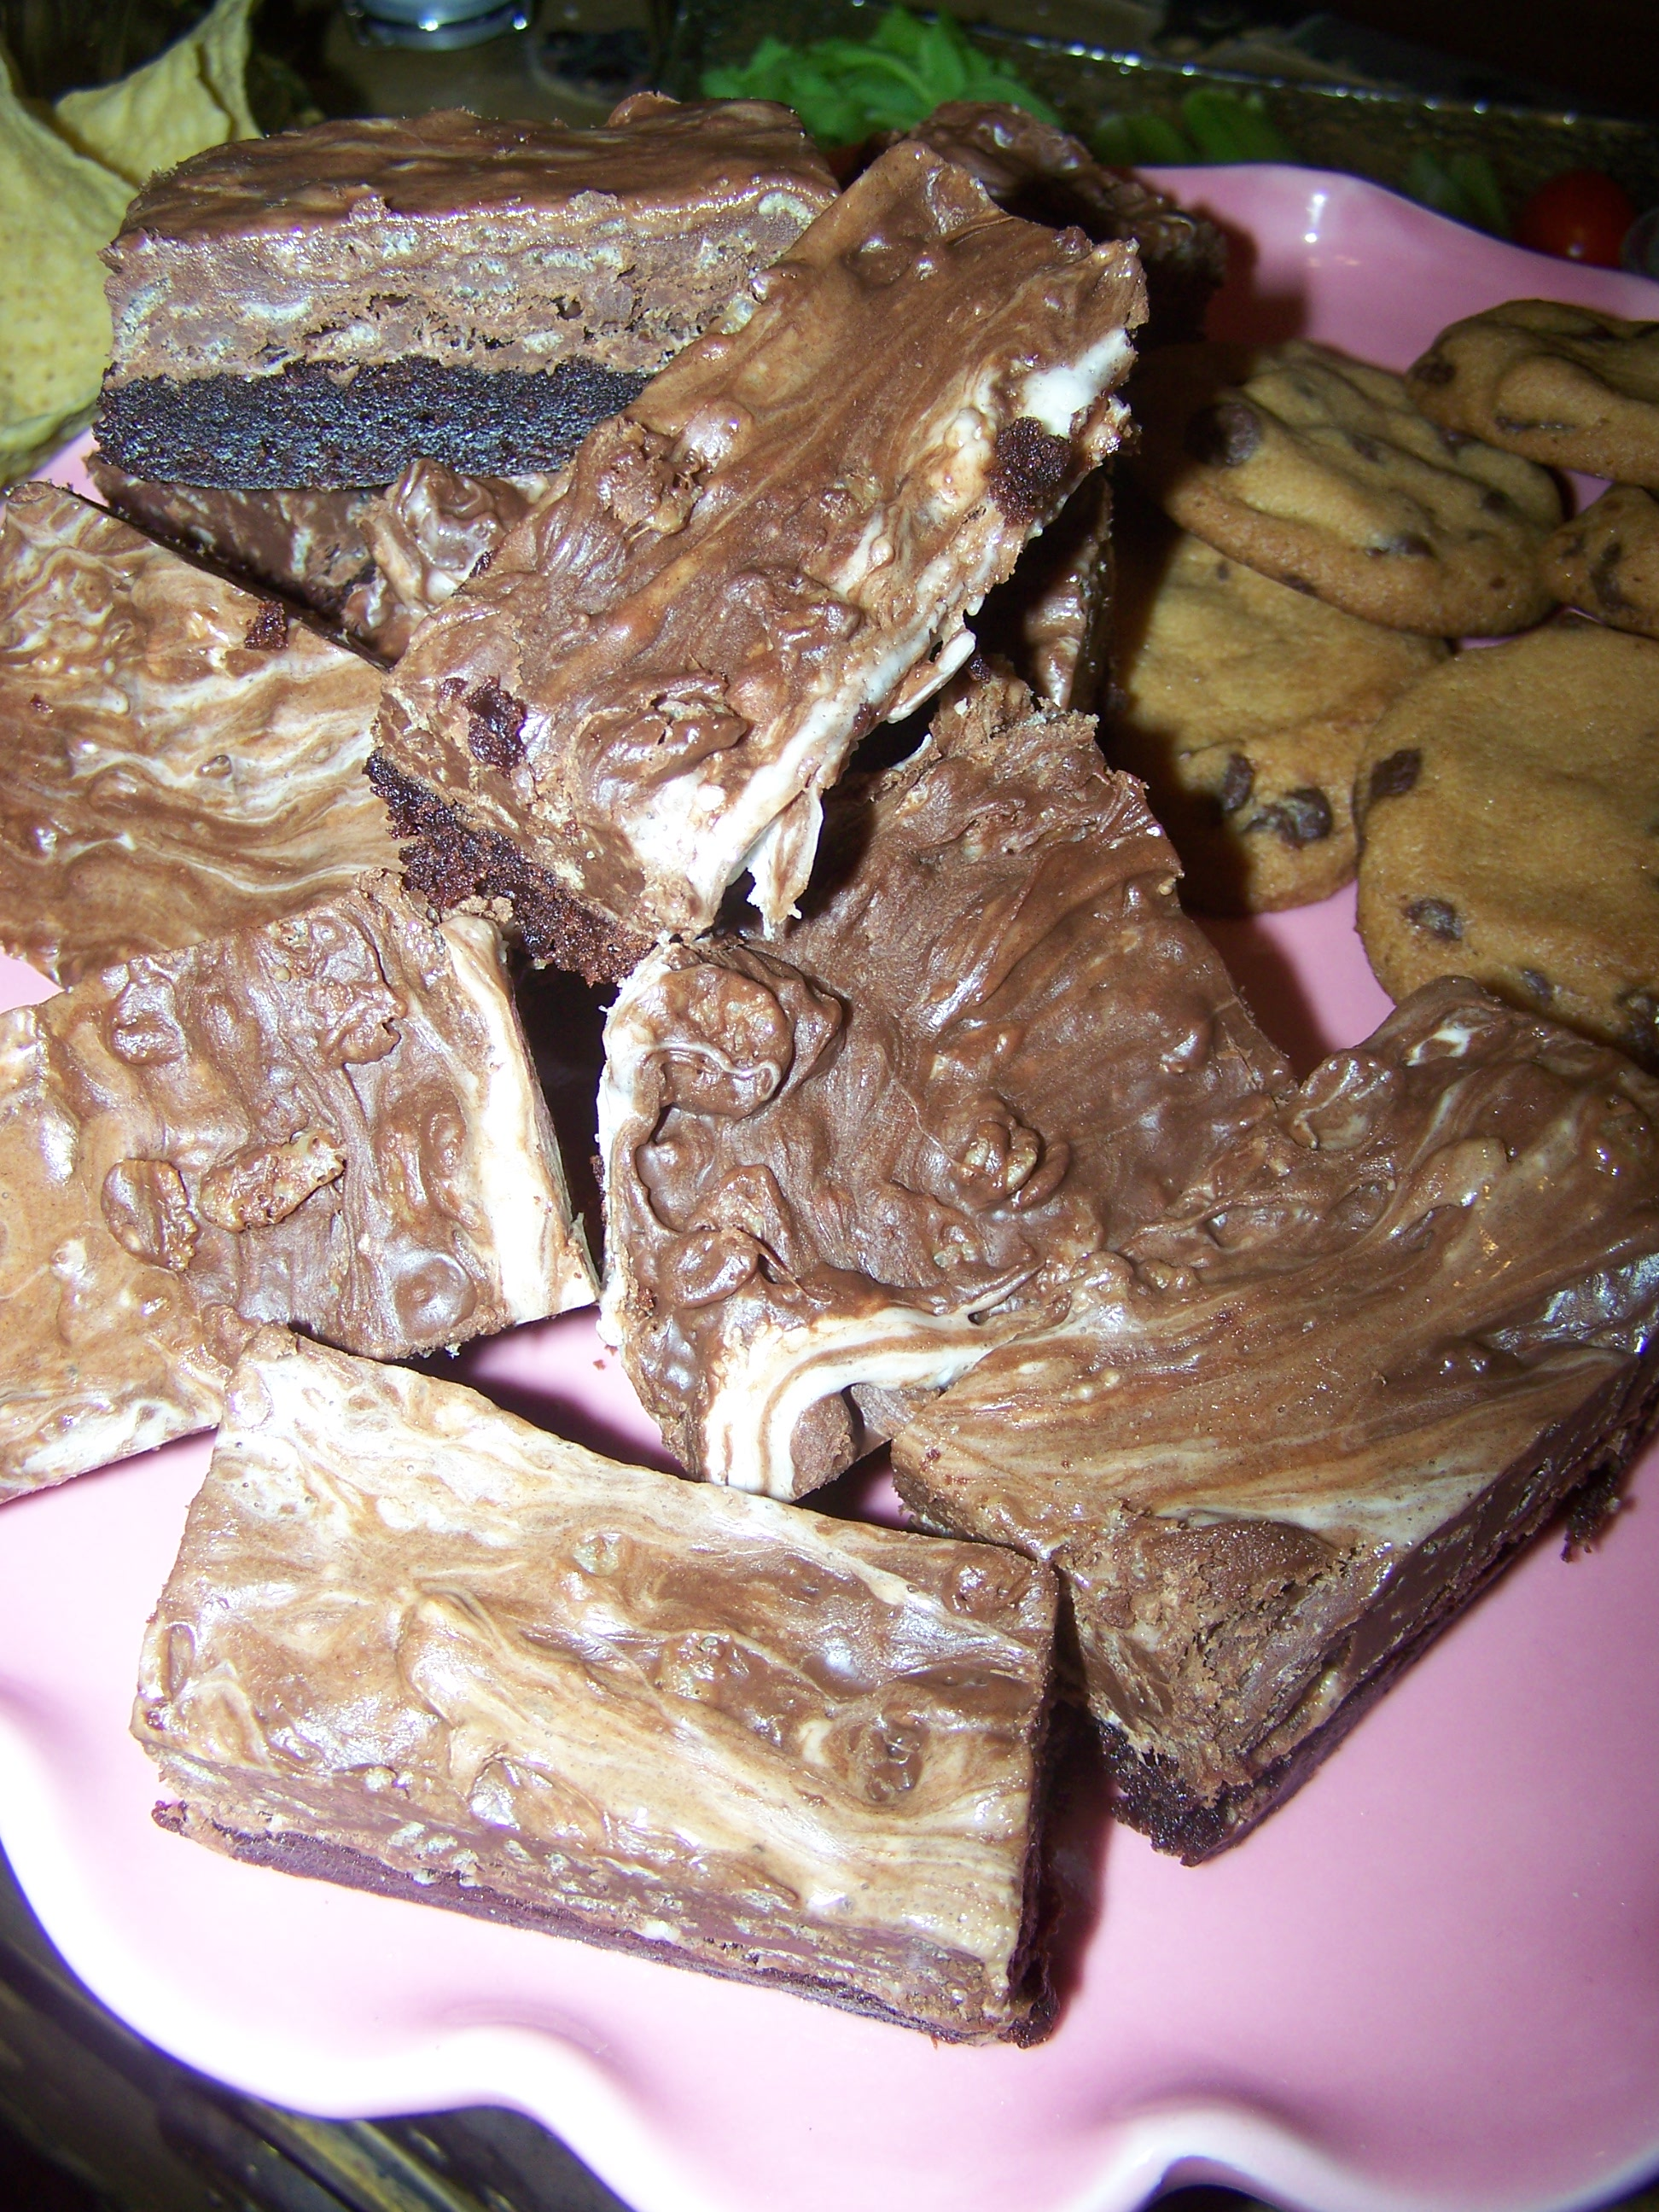 Brownie Mallow Bars That Make You Go MMMM - Better homes and gardens brownie recipe